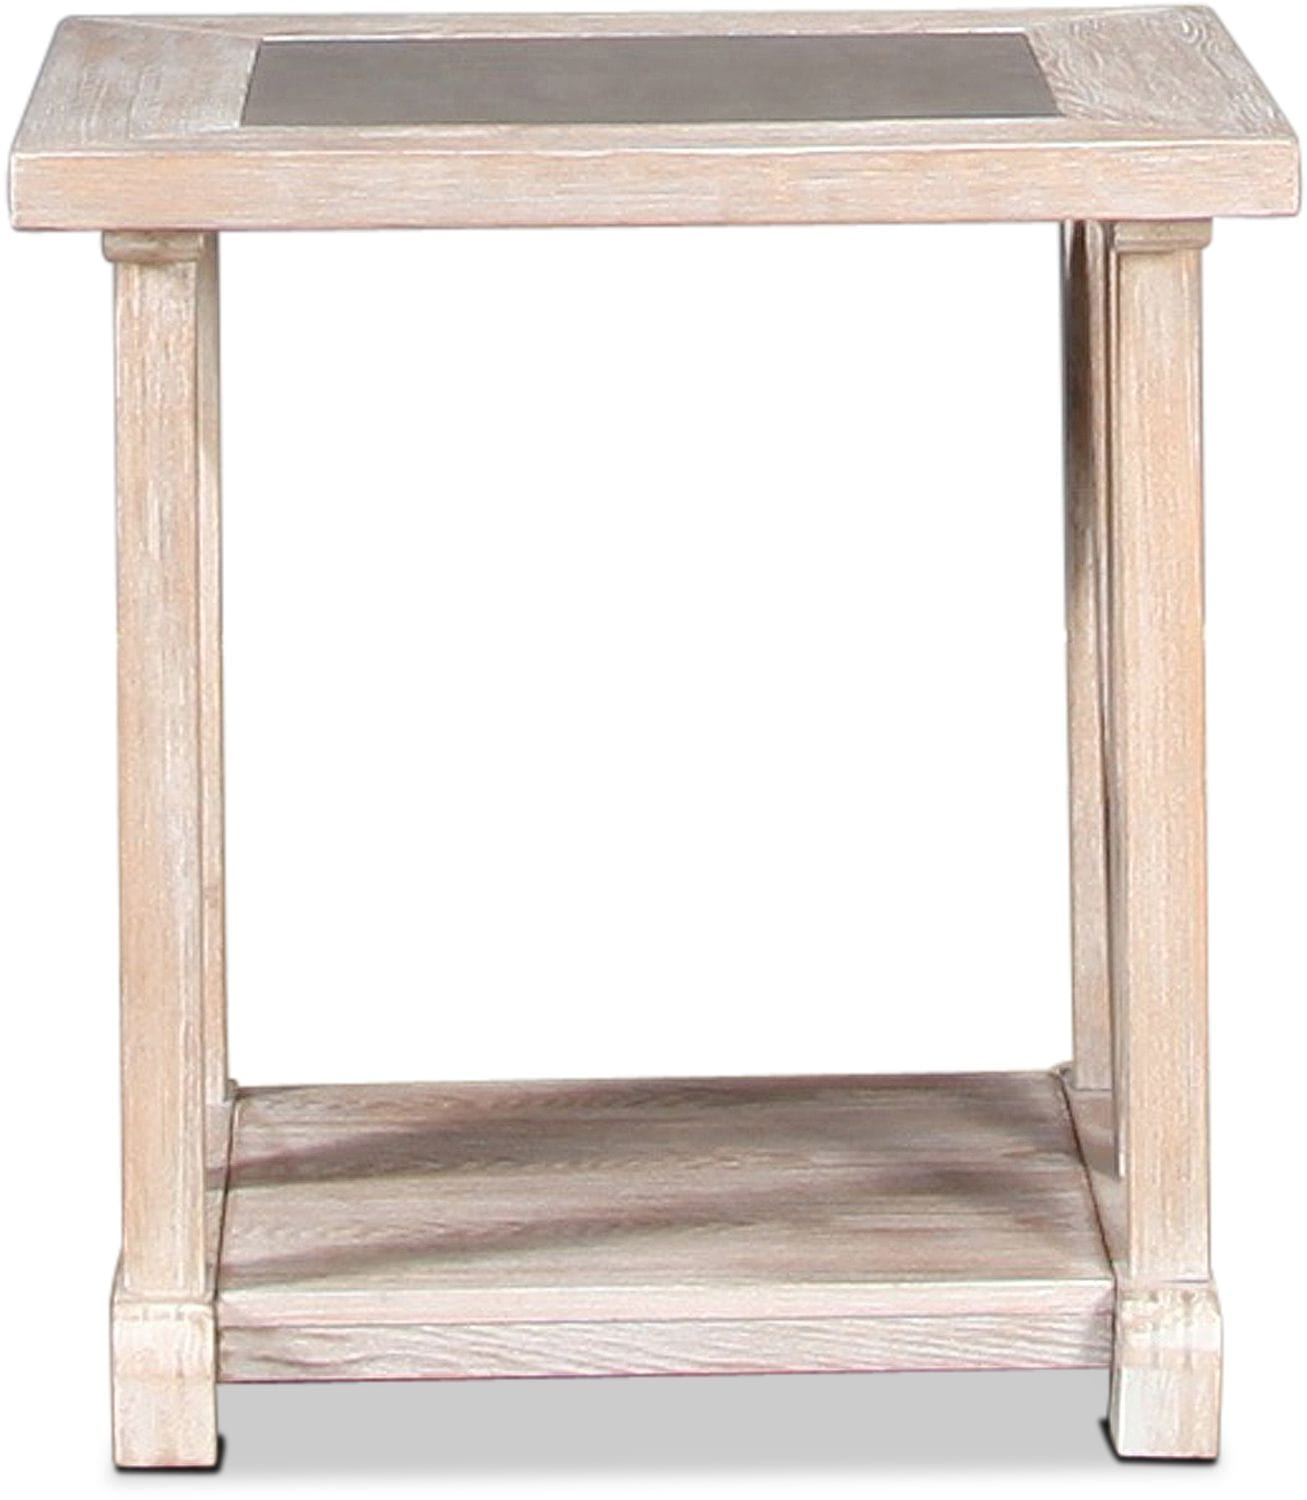 Brixton End Table - Driftwood Gray